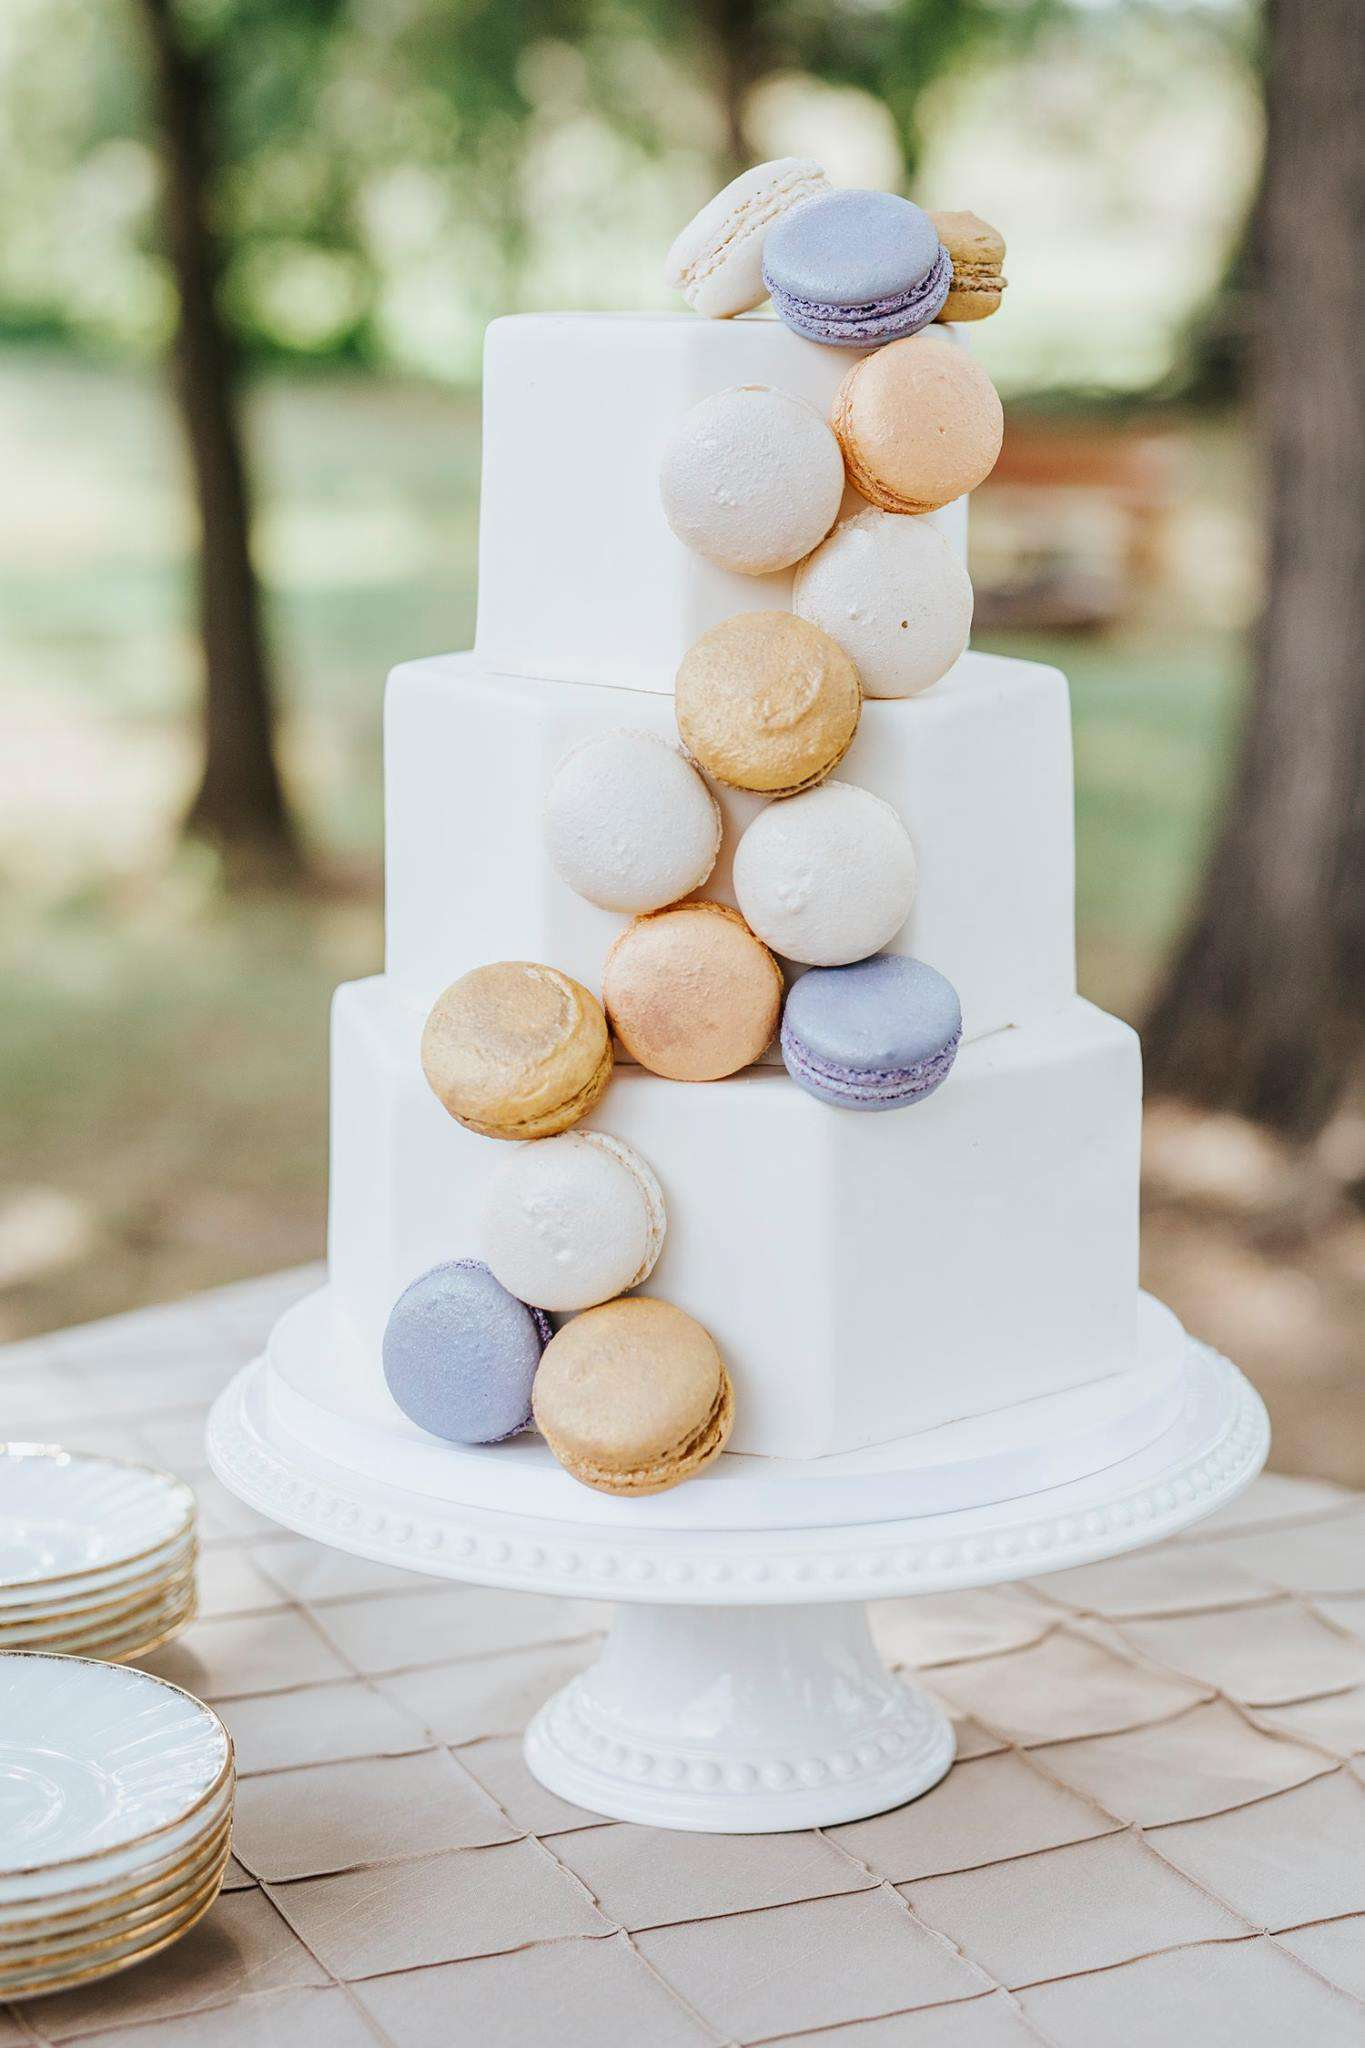 tiered cake with macarons